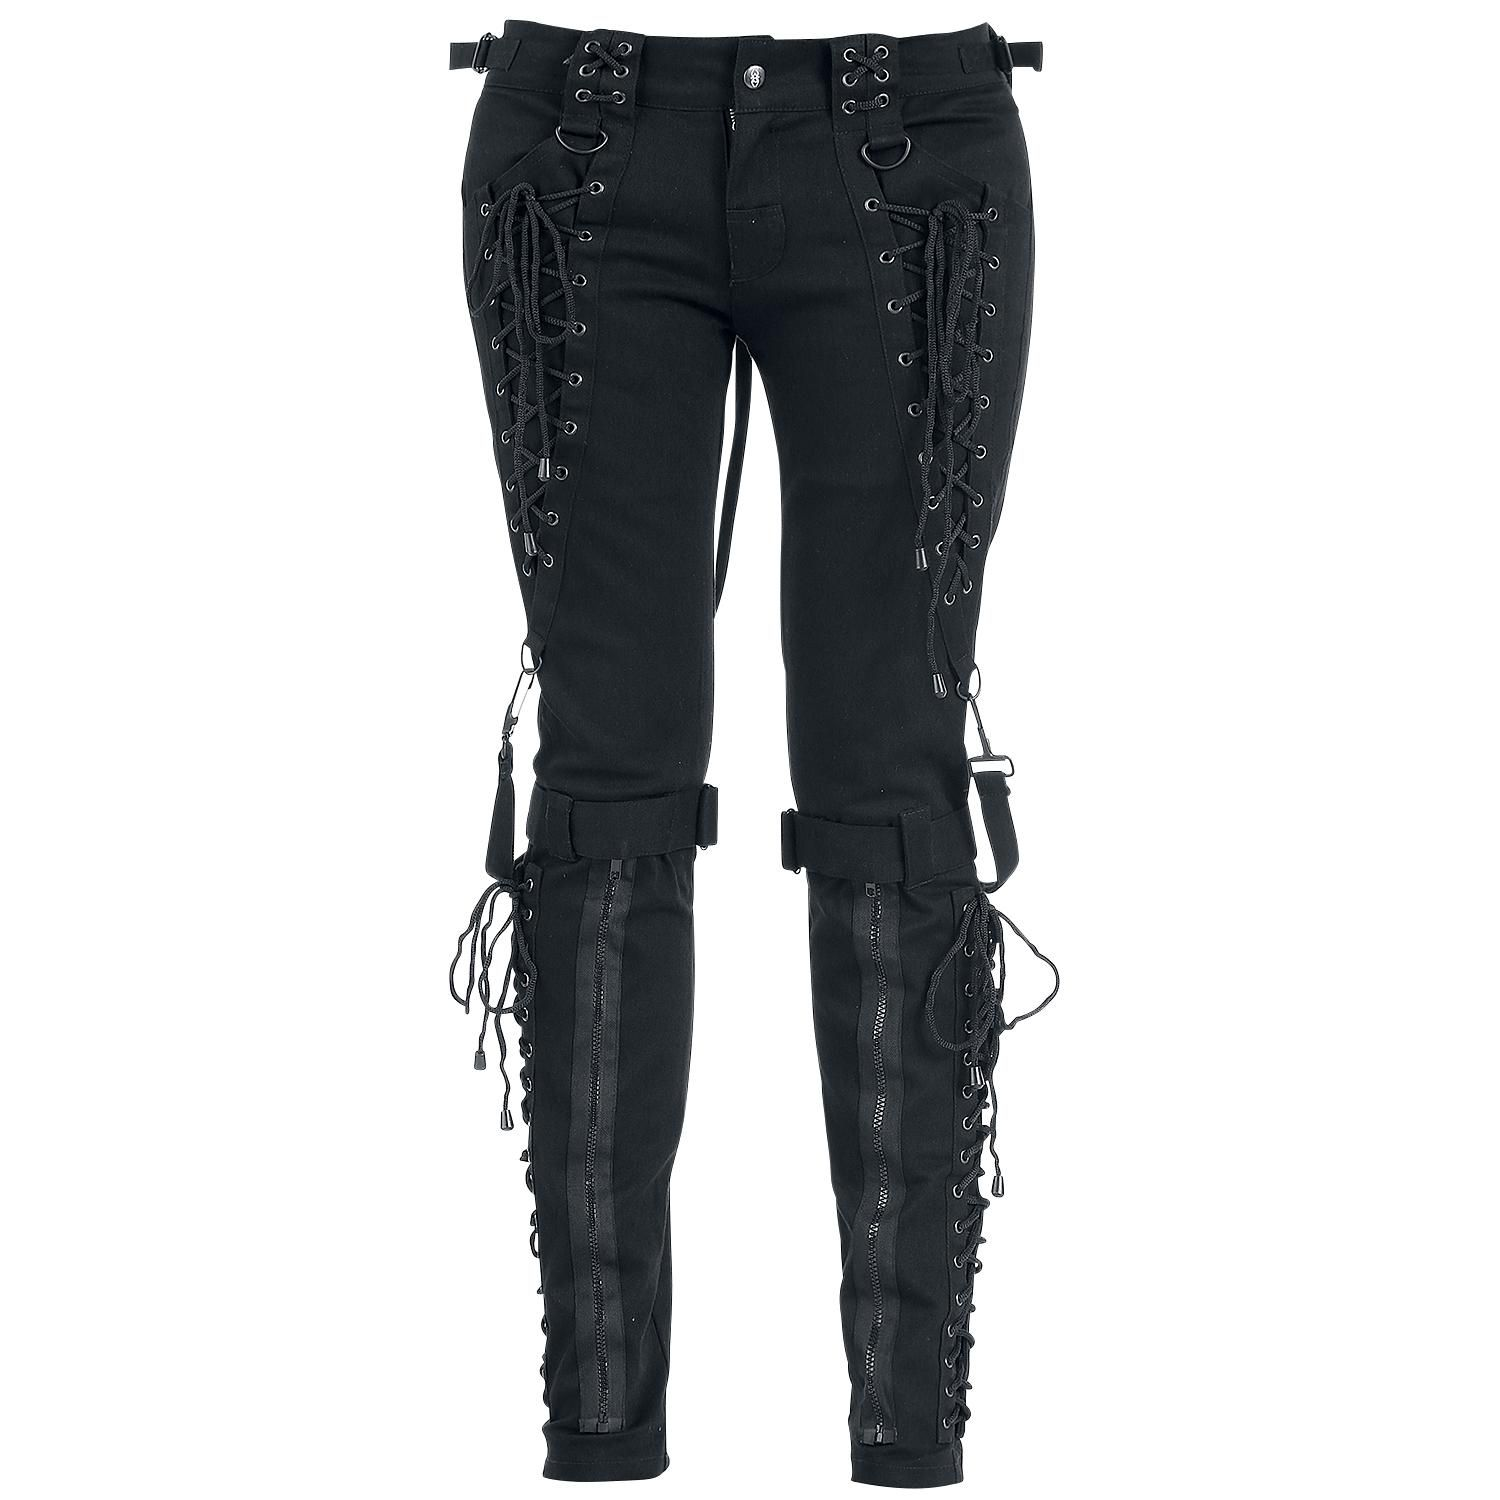 Broken Puppet Trousers Pants by Gothicana by EMP